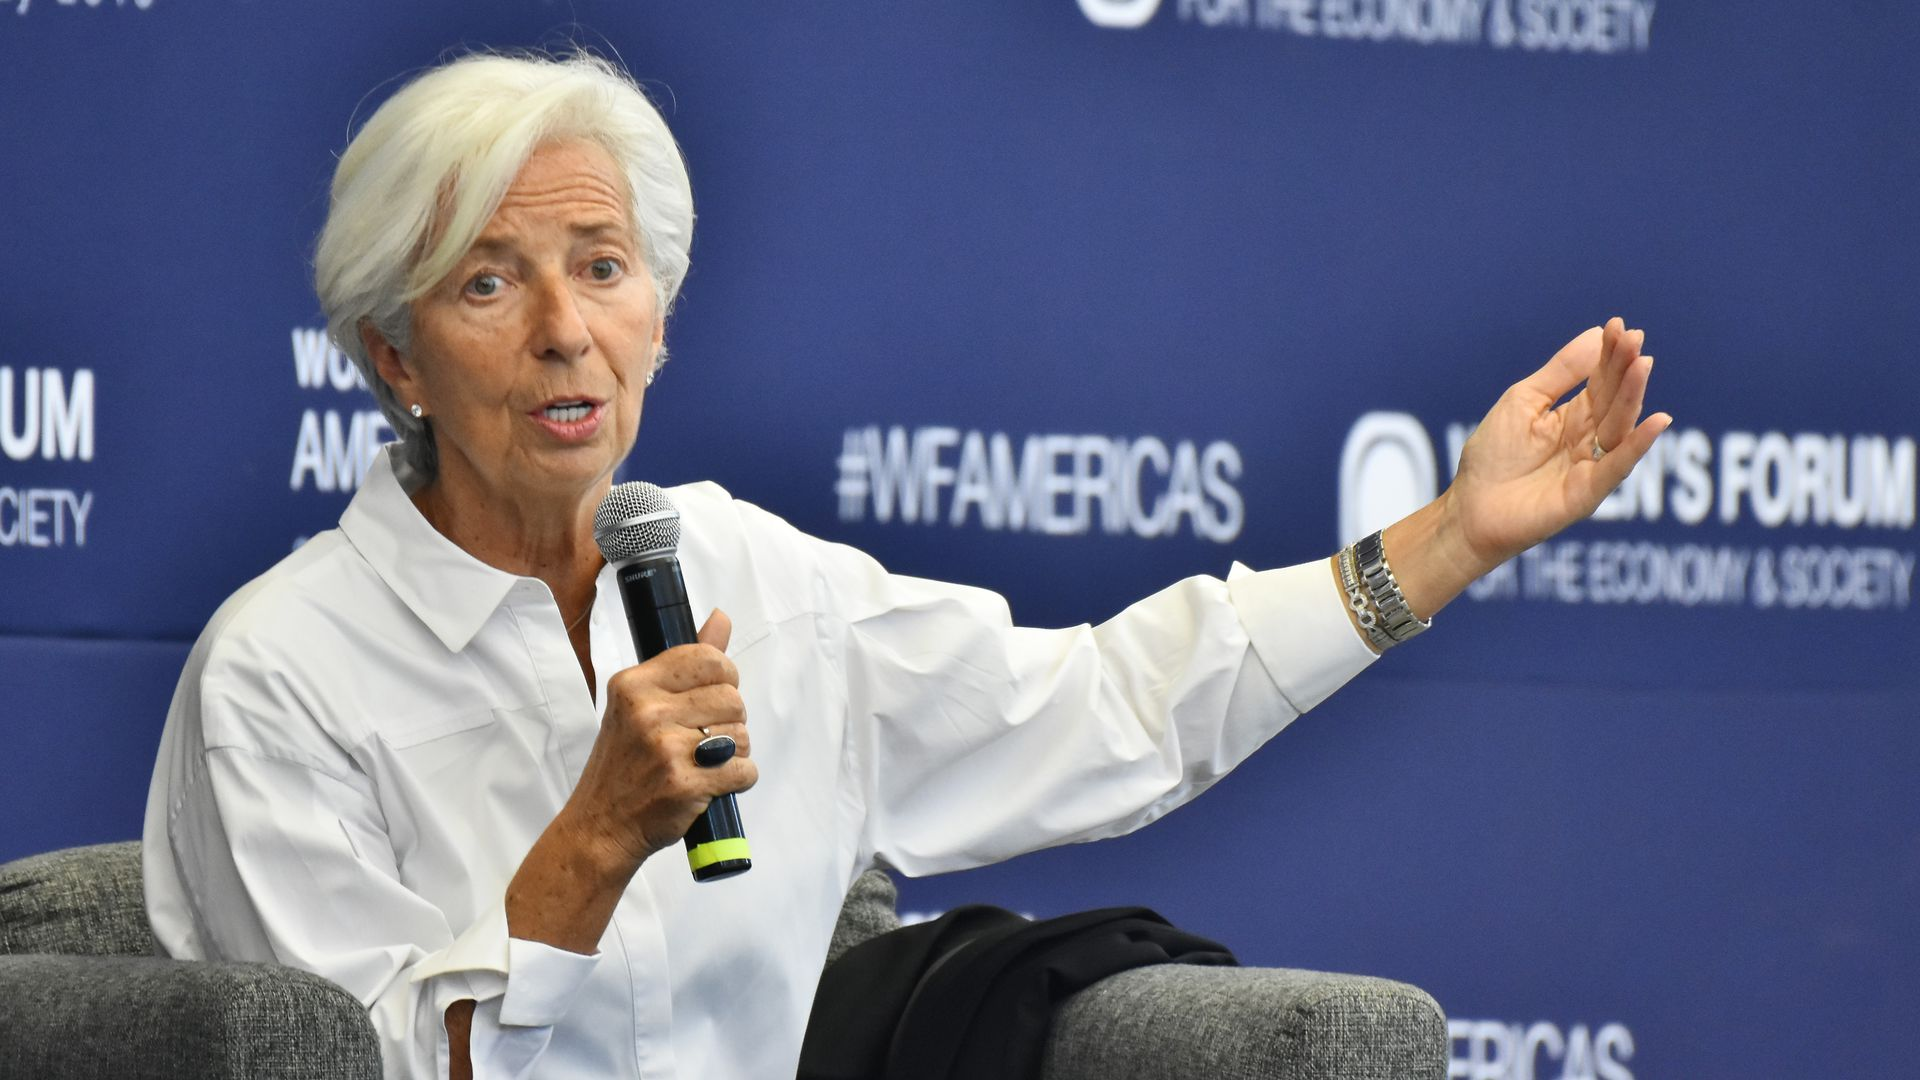 Christine Lagarde speaks at Women's Forum Americas 2019 at Claustro of Sor Juana University on May 30, 2019 in Mexico City, Mexico